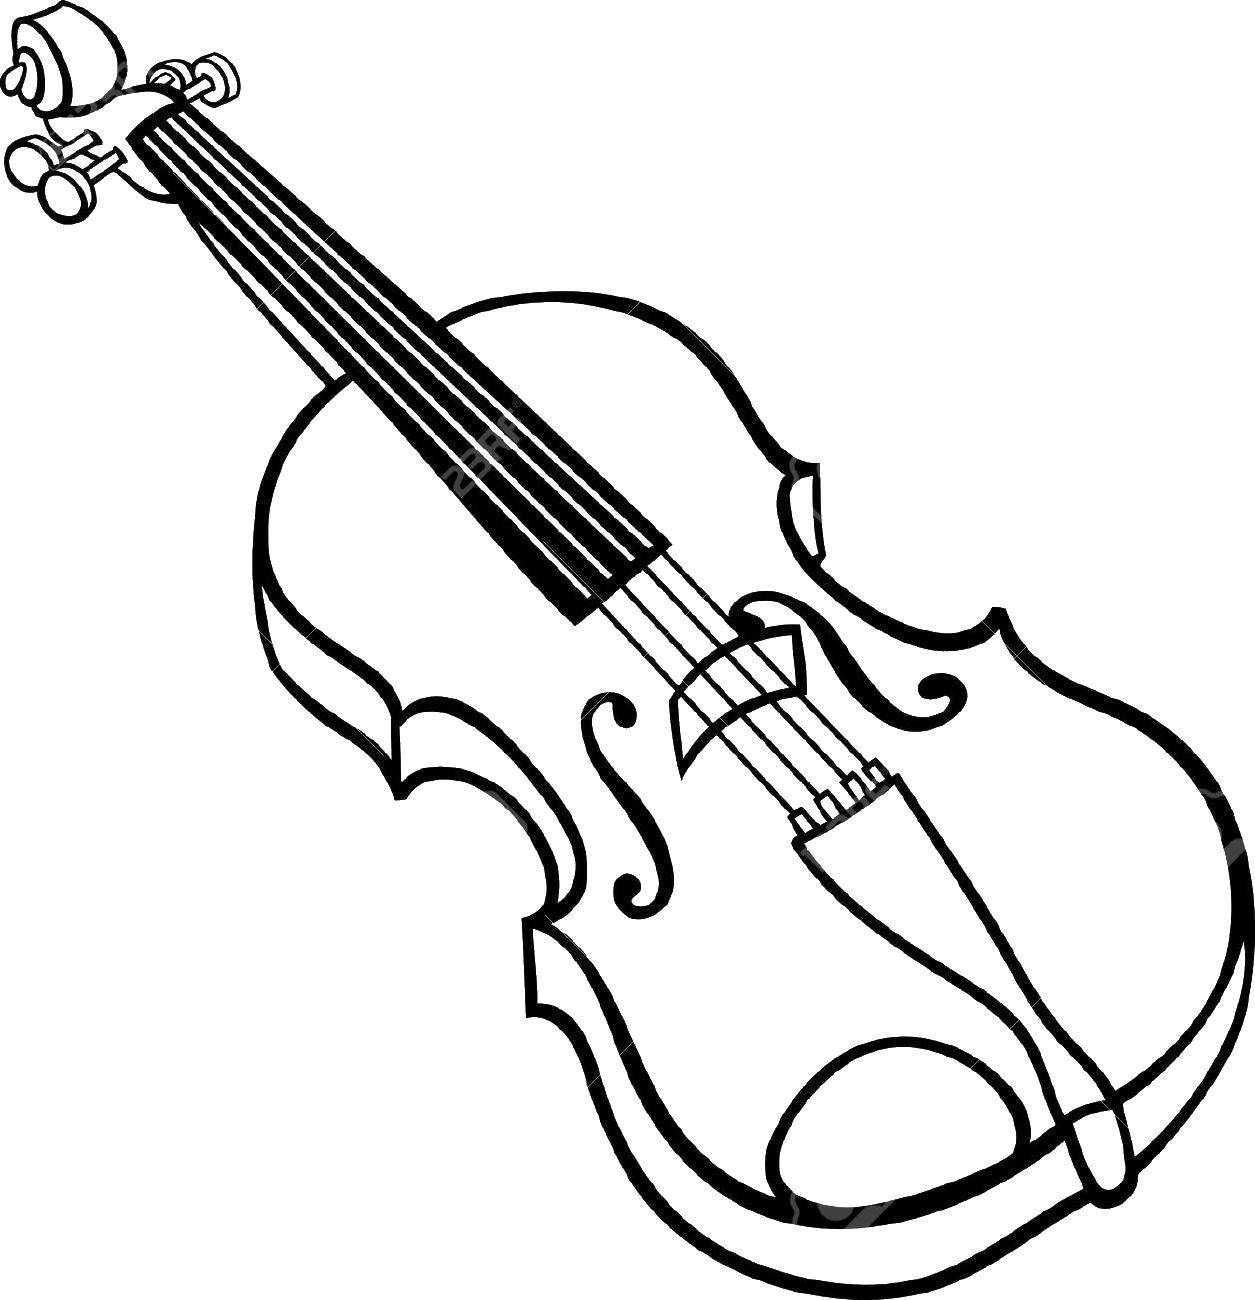 Online coloring pages Coloring page Cello Music, Coloring Download ...